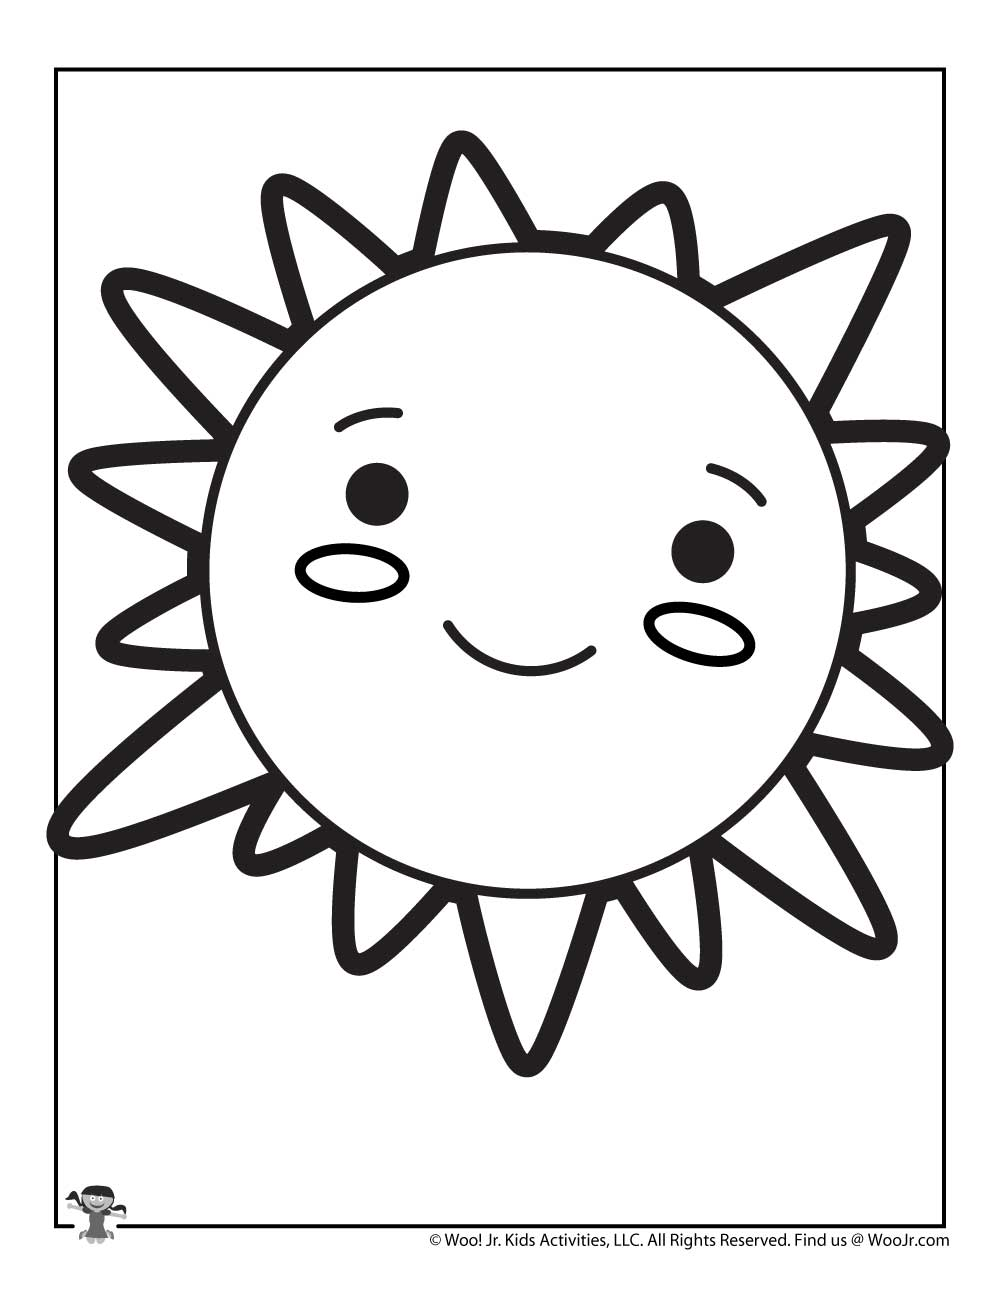 Cute Sun Coloring Page For Kids Woo Jr Kids Activities